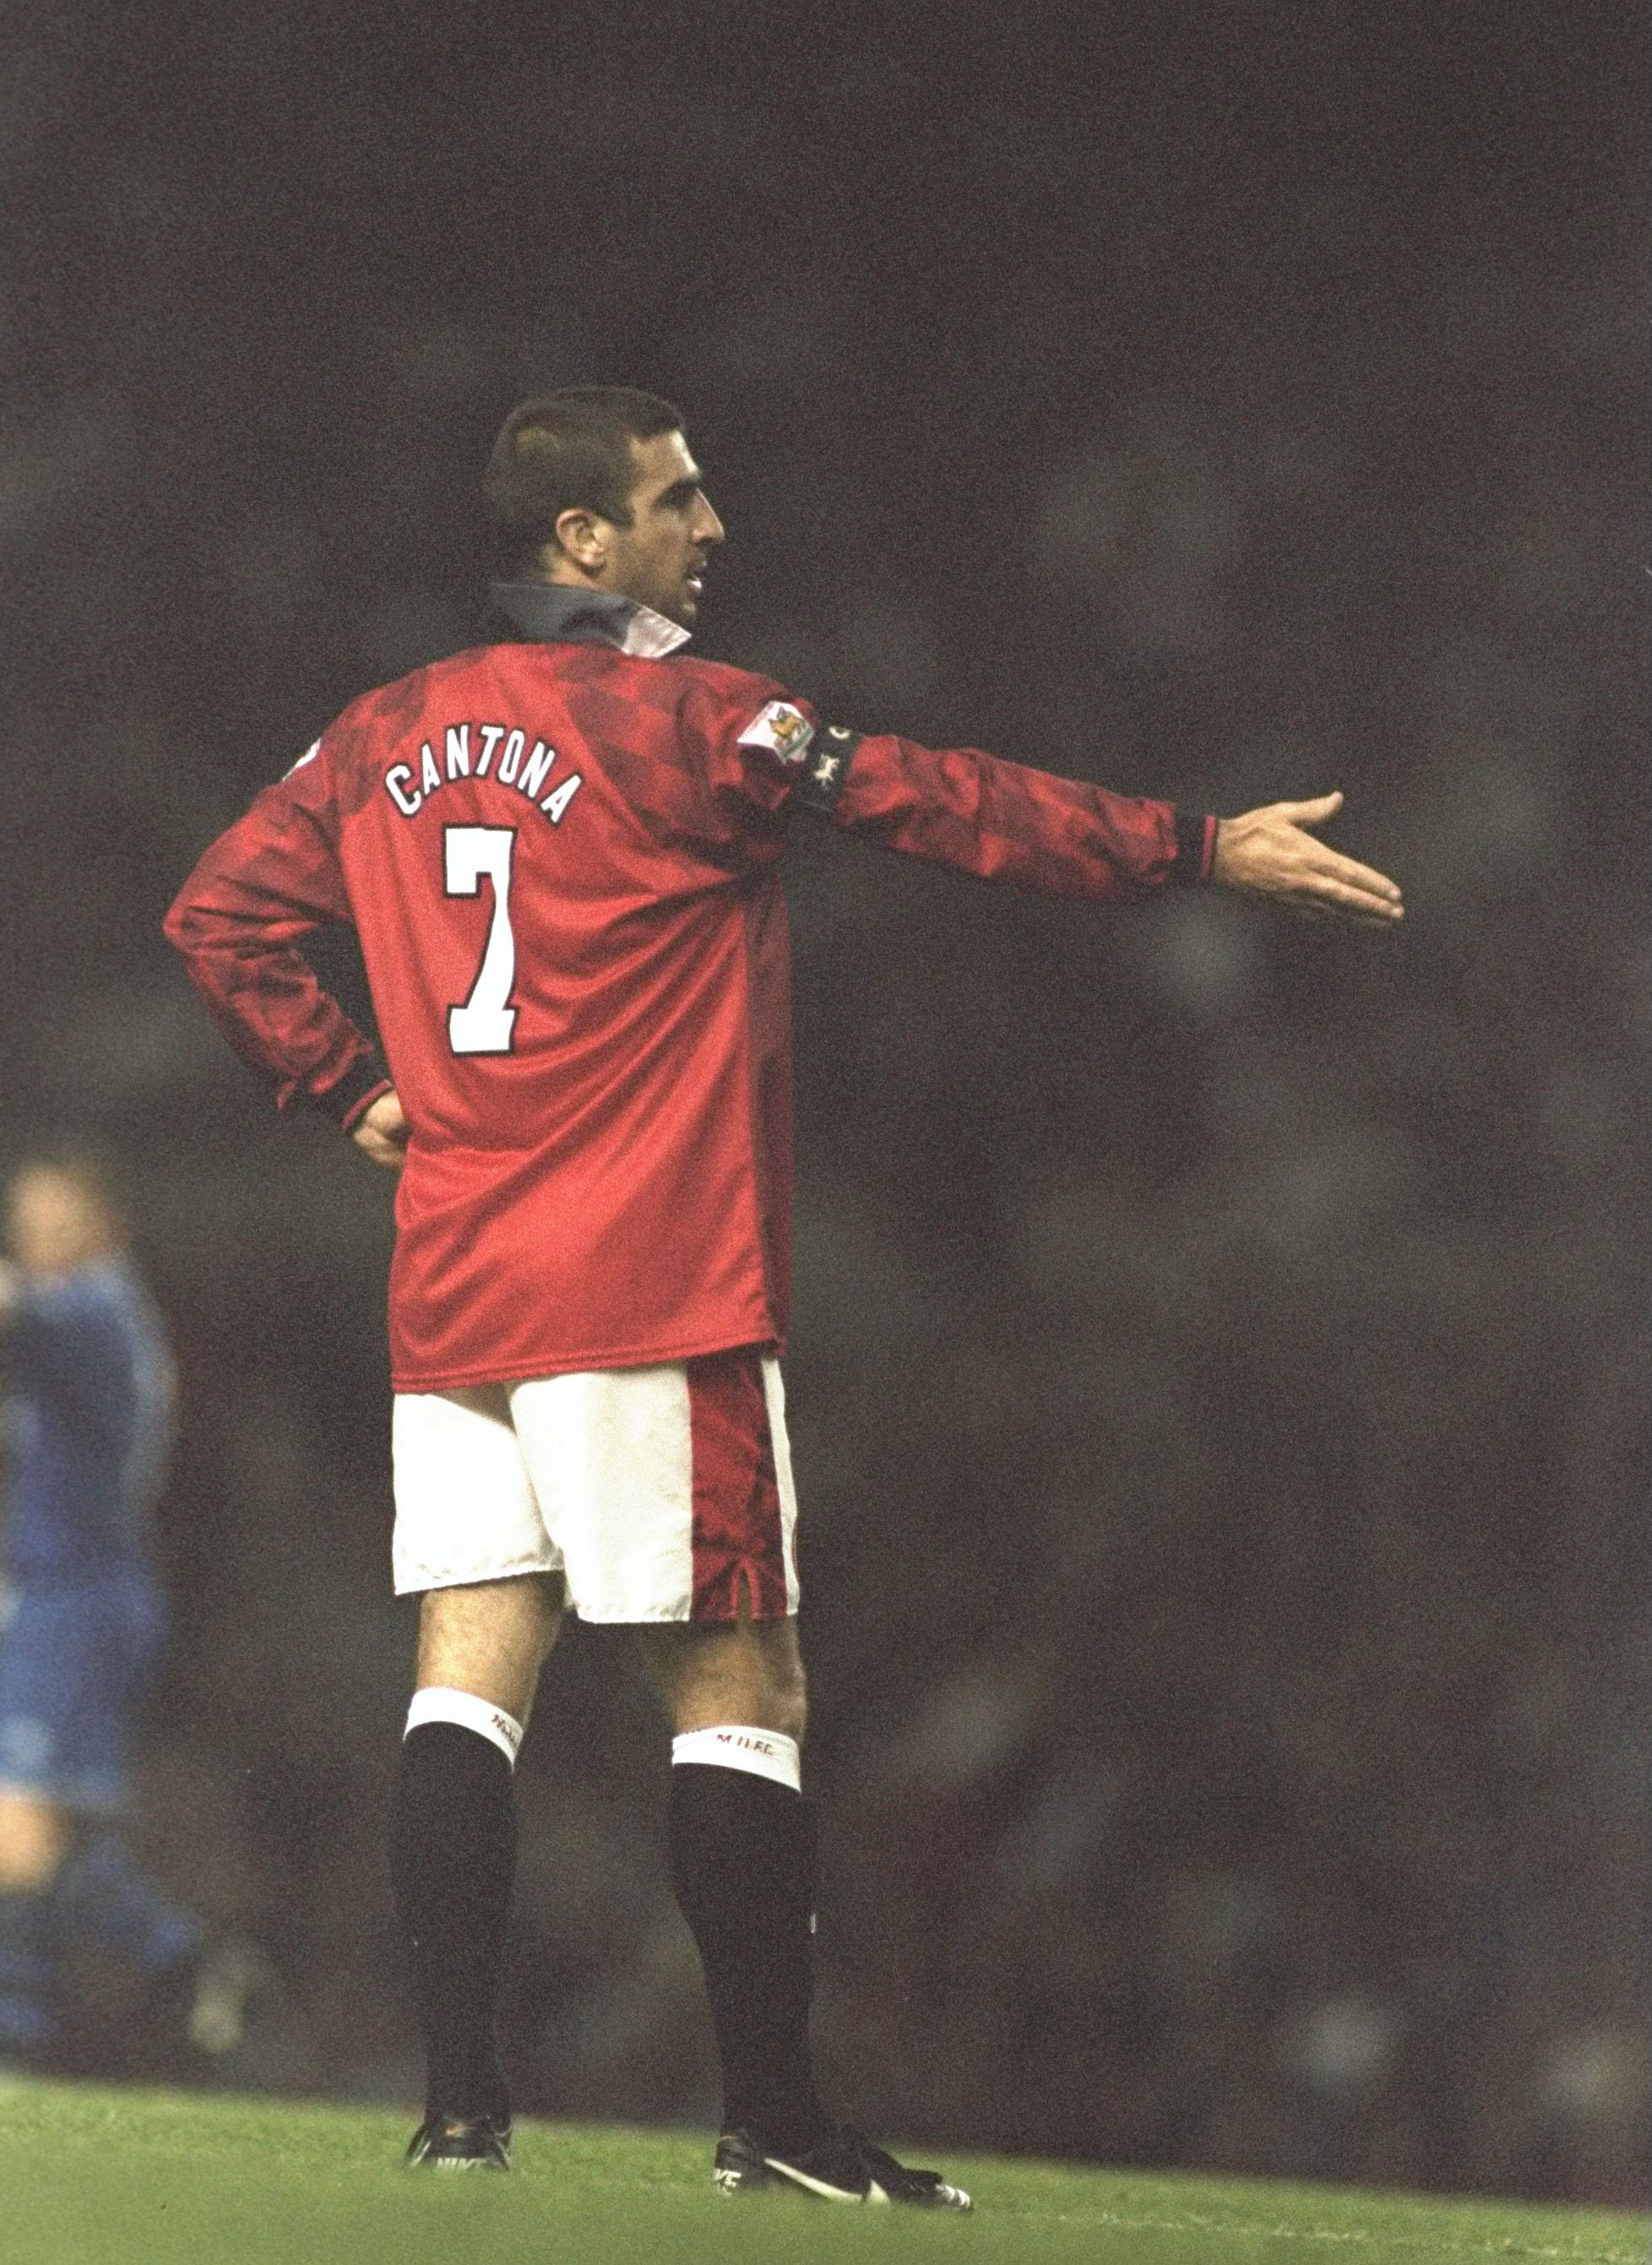 21 Aug 1996:  Eric Cantona of Manchester United starts felling frustration during the FA Carling Premier league match against Everton at Old Trafford in Manchester which ended in a 2-2 draw. Mandatory Credit: Anton Want/Allsport